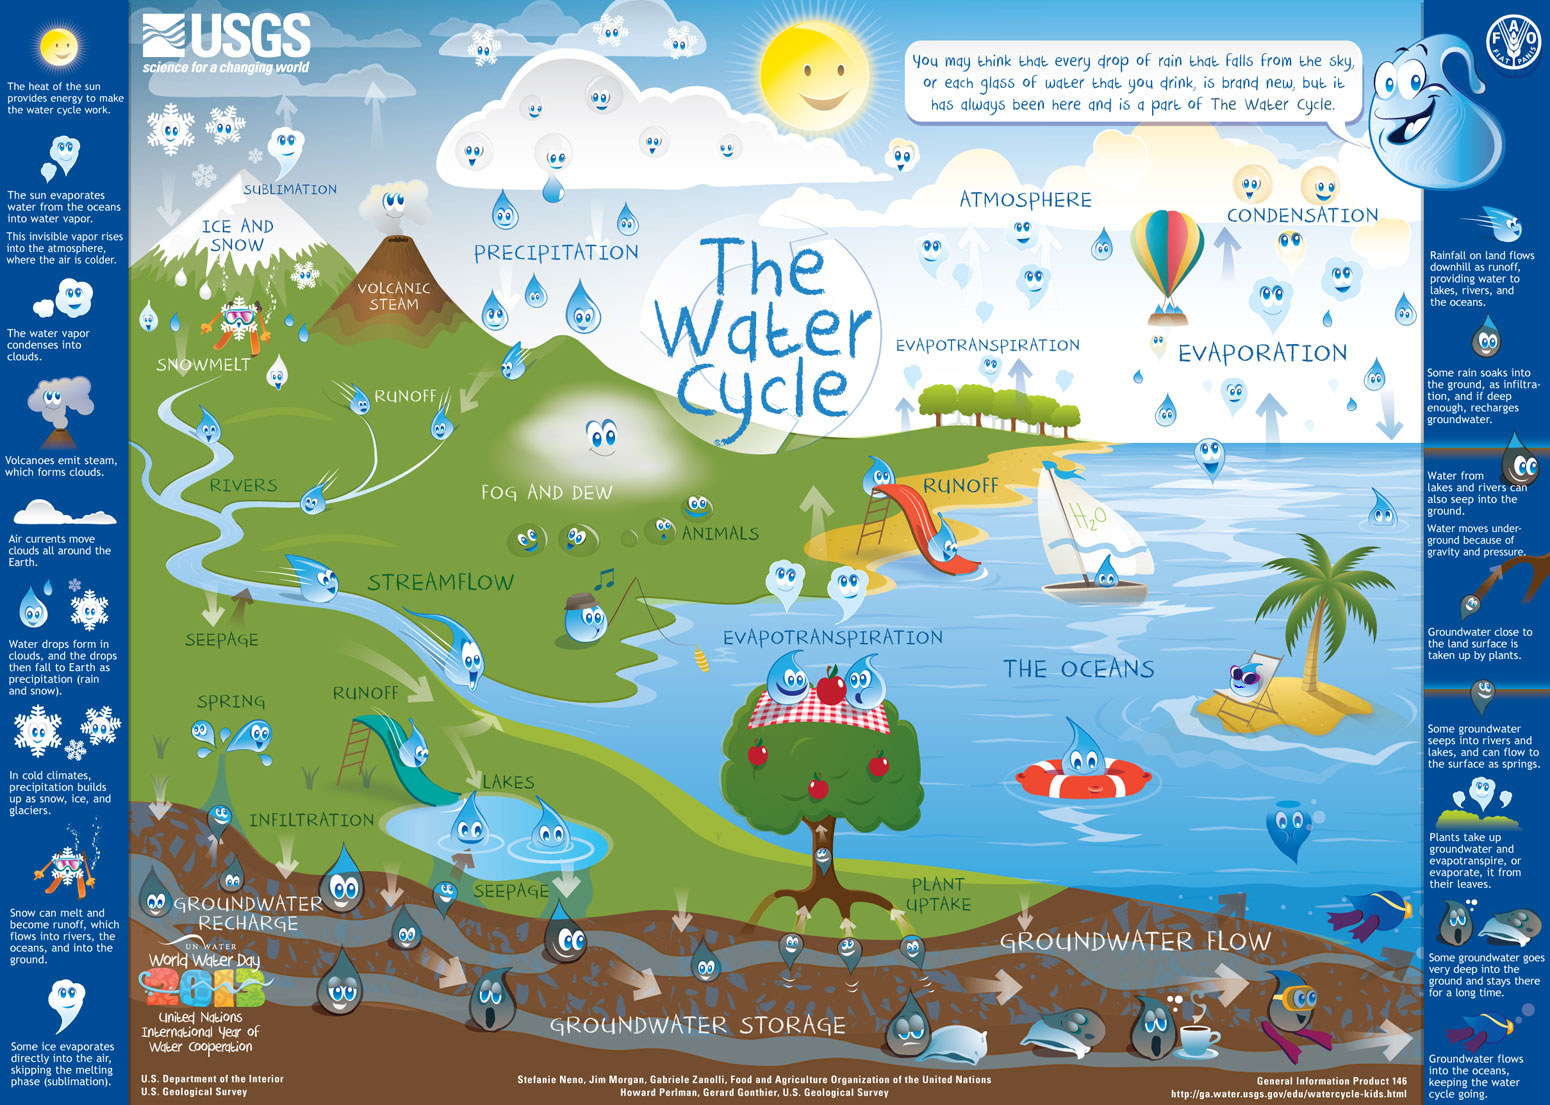 Cheery tear drops illustrate the water cycle for kids